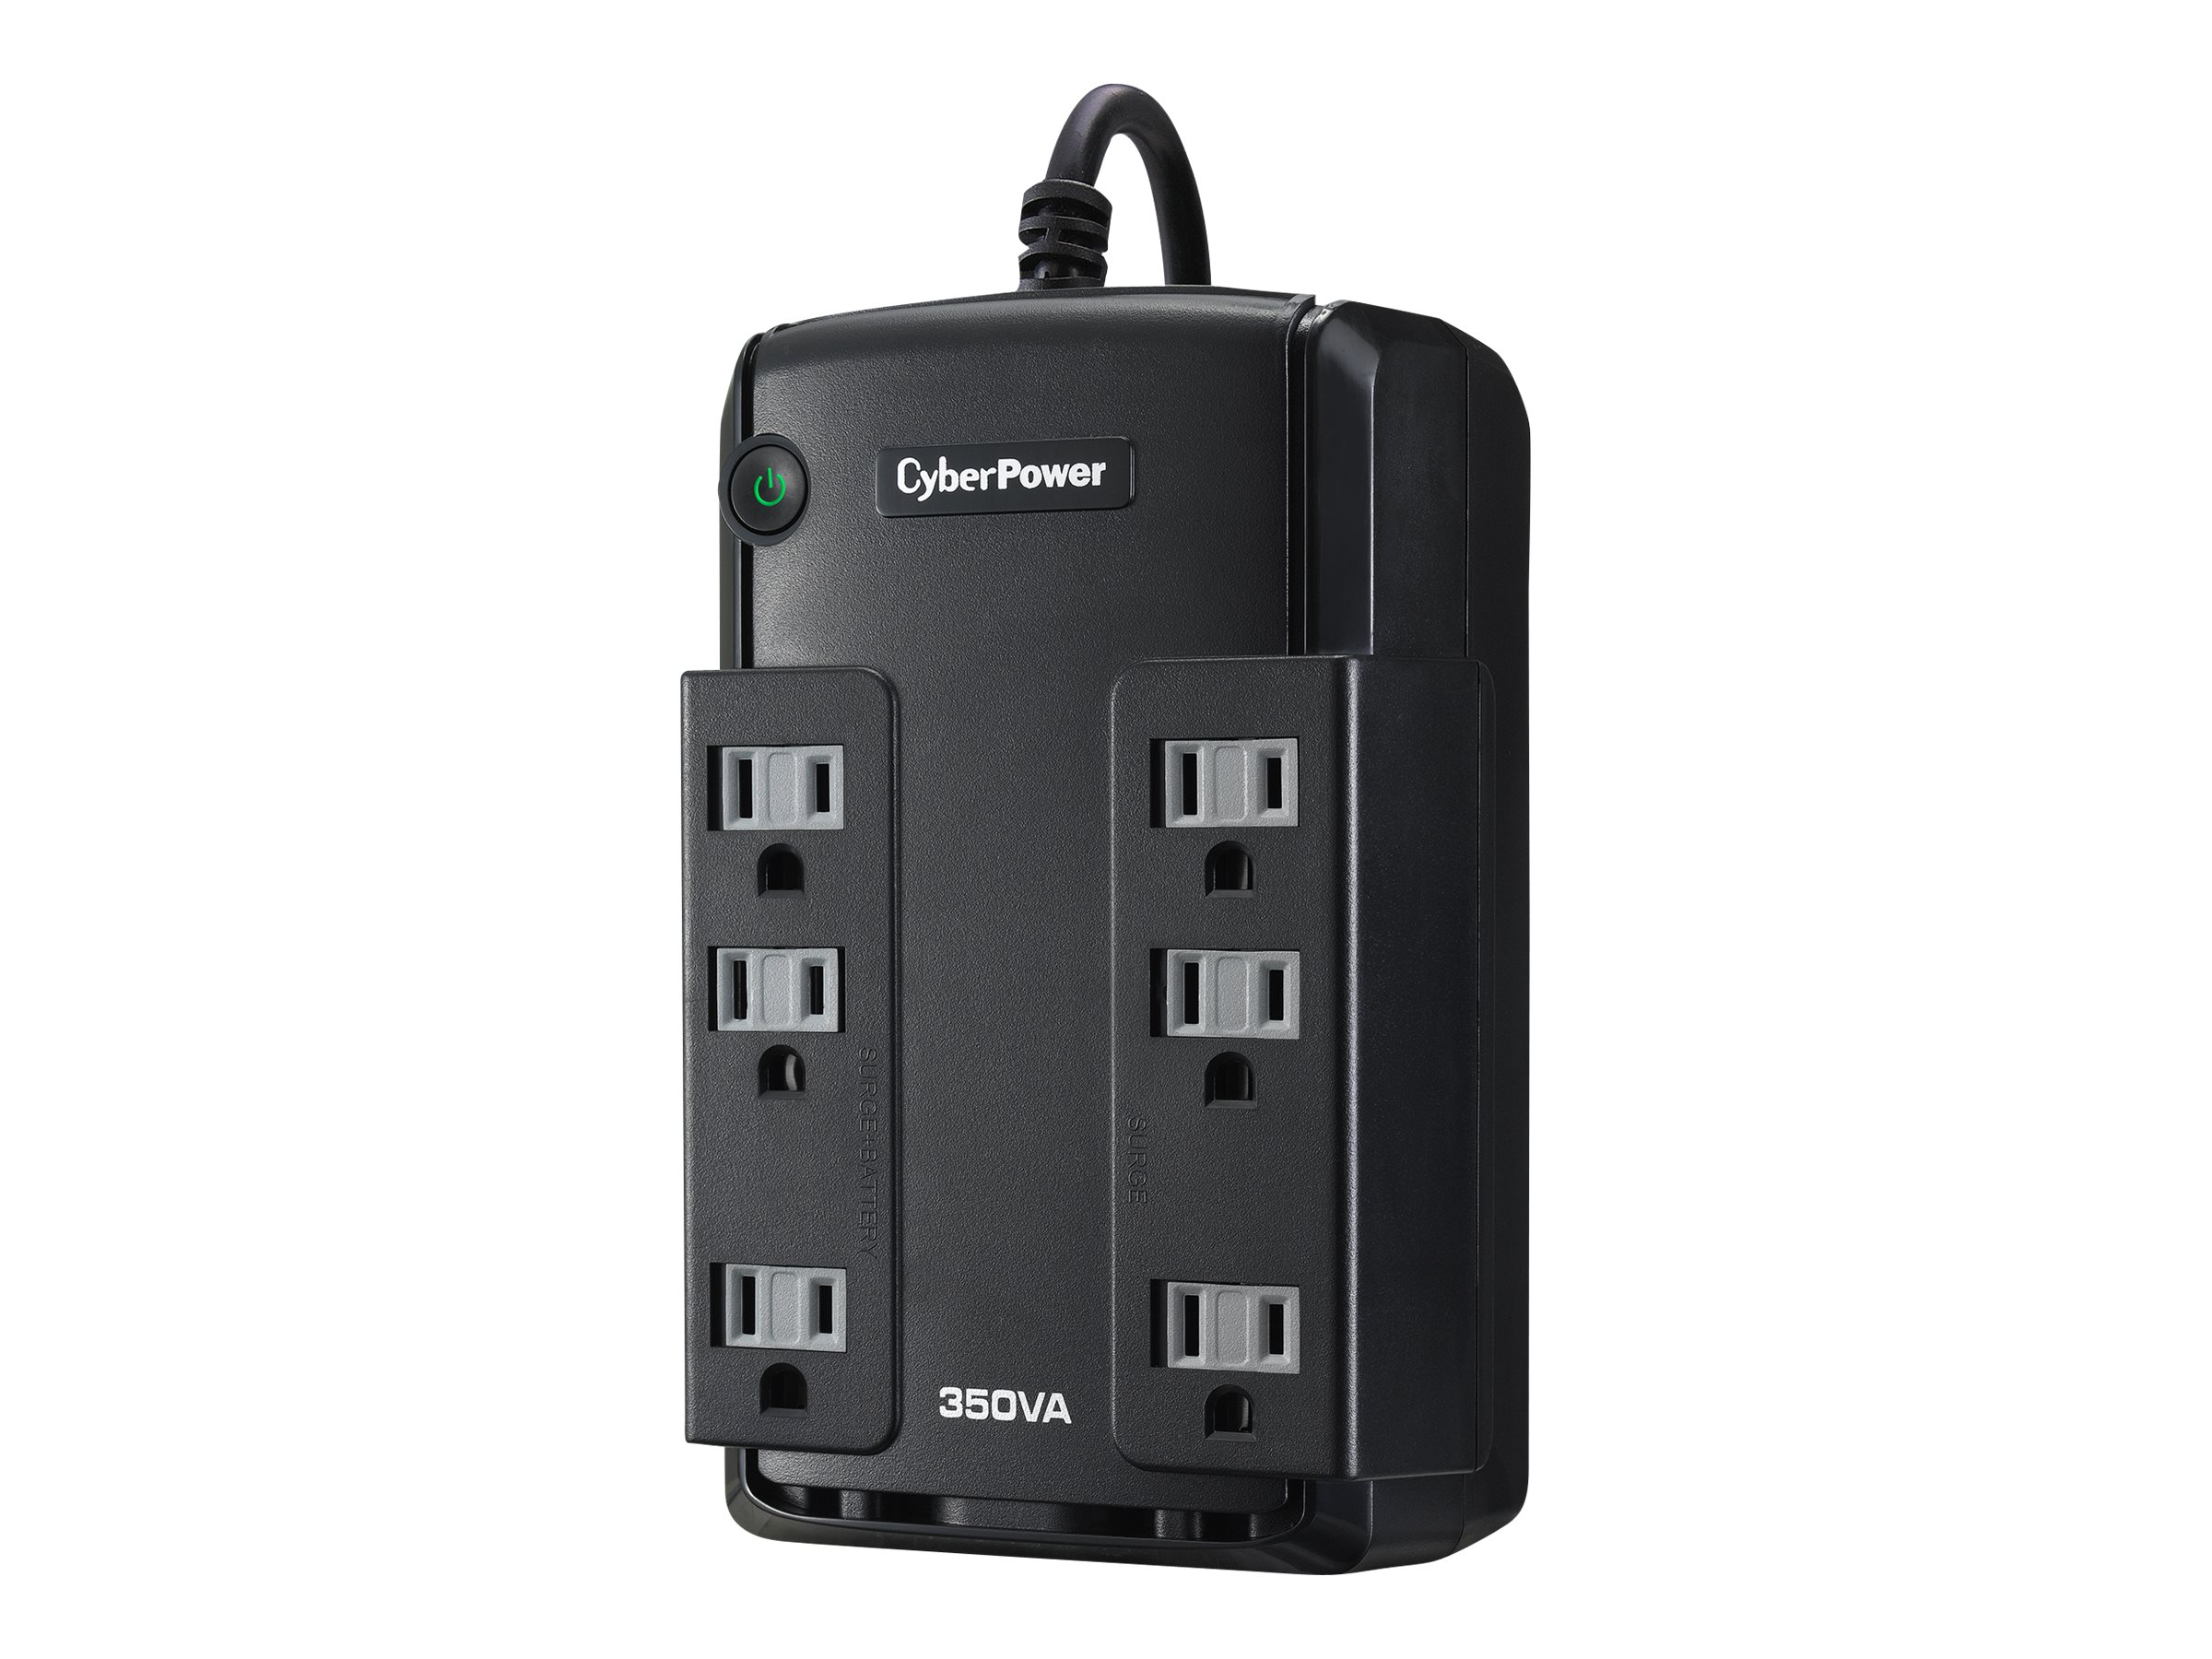 CyberPower 350VA Compact 96V-140V Standby UPS 5-15P Input 5ft Cord (6) 5-15R Outlets